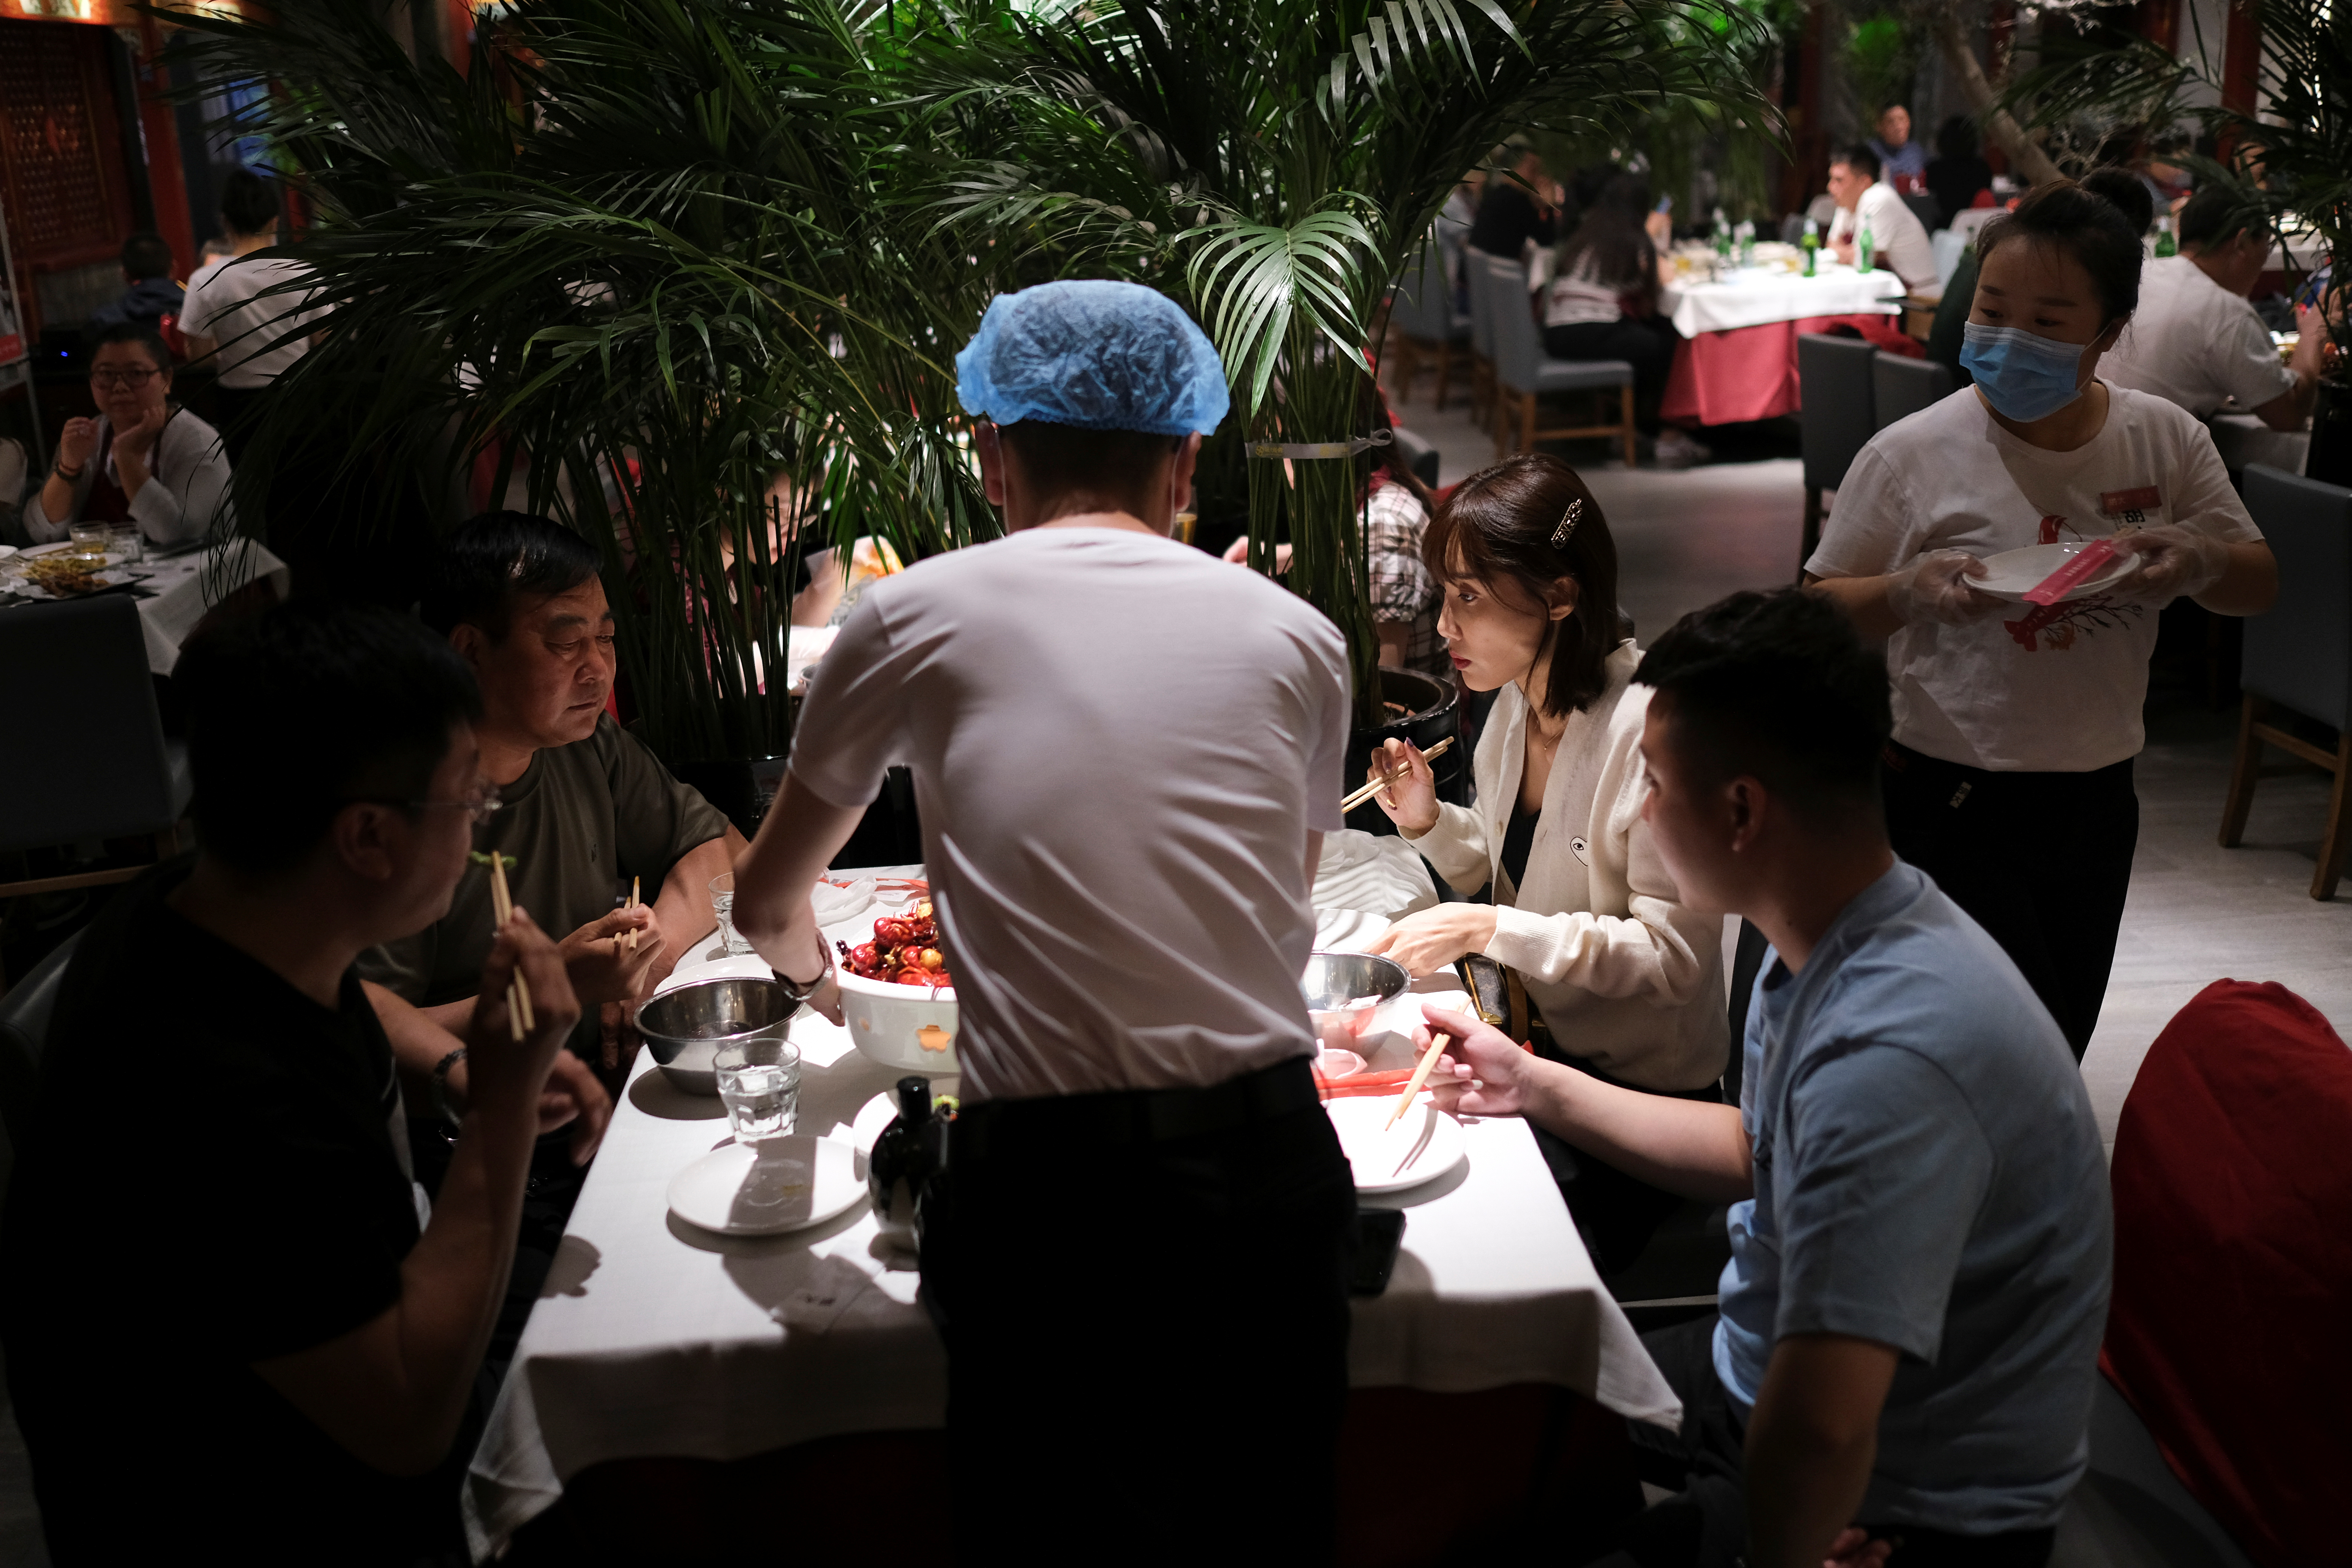 People enjoy their meal at a restaurant, following an outbreak of the coronavirus disease (COVID-19), in Beijing, China May 7, 2020. REUTERS/Carlos Garcia Rawlins